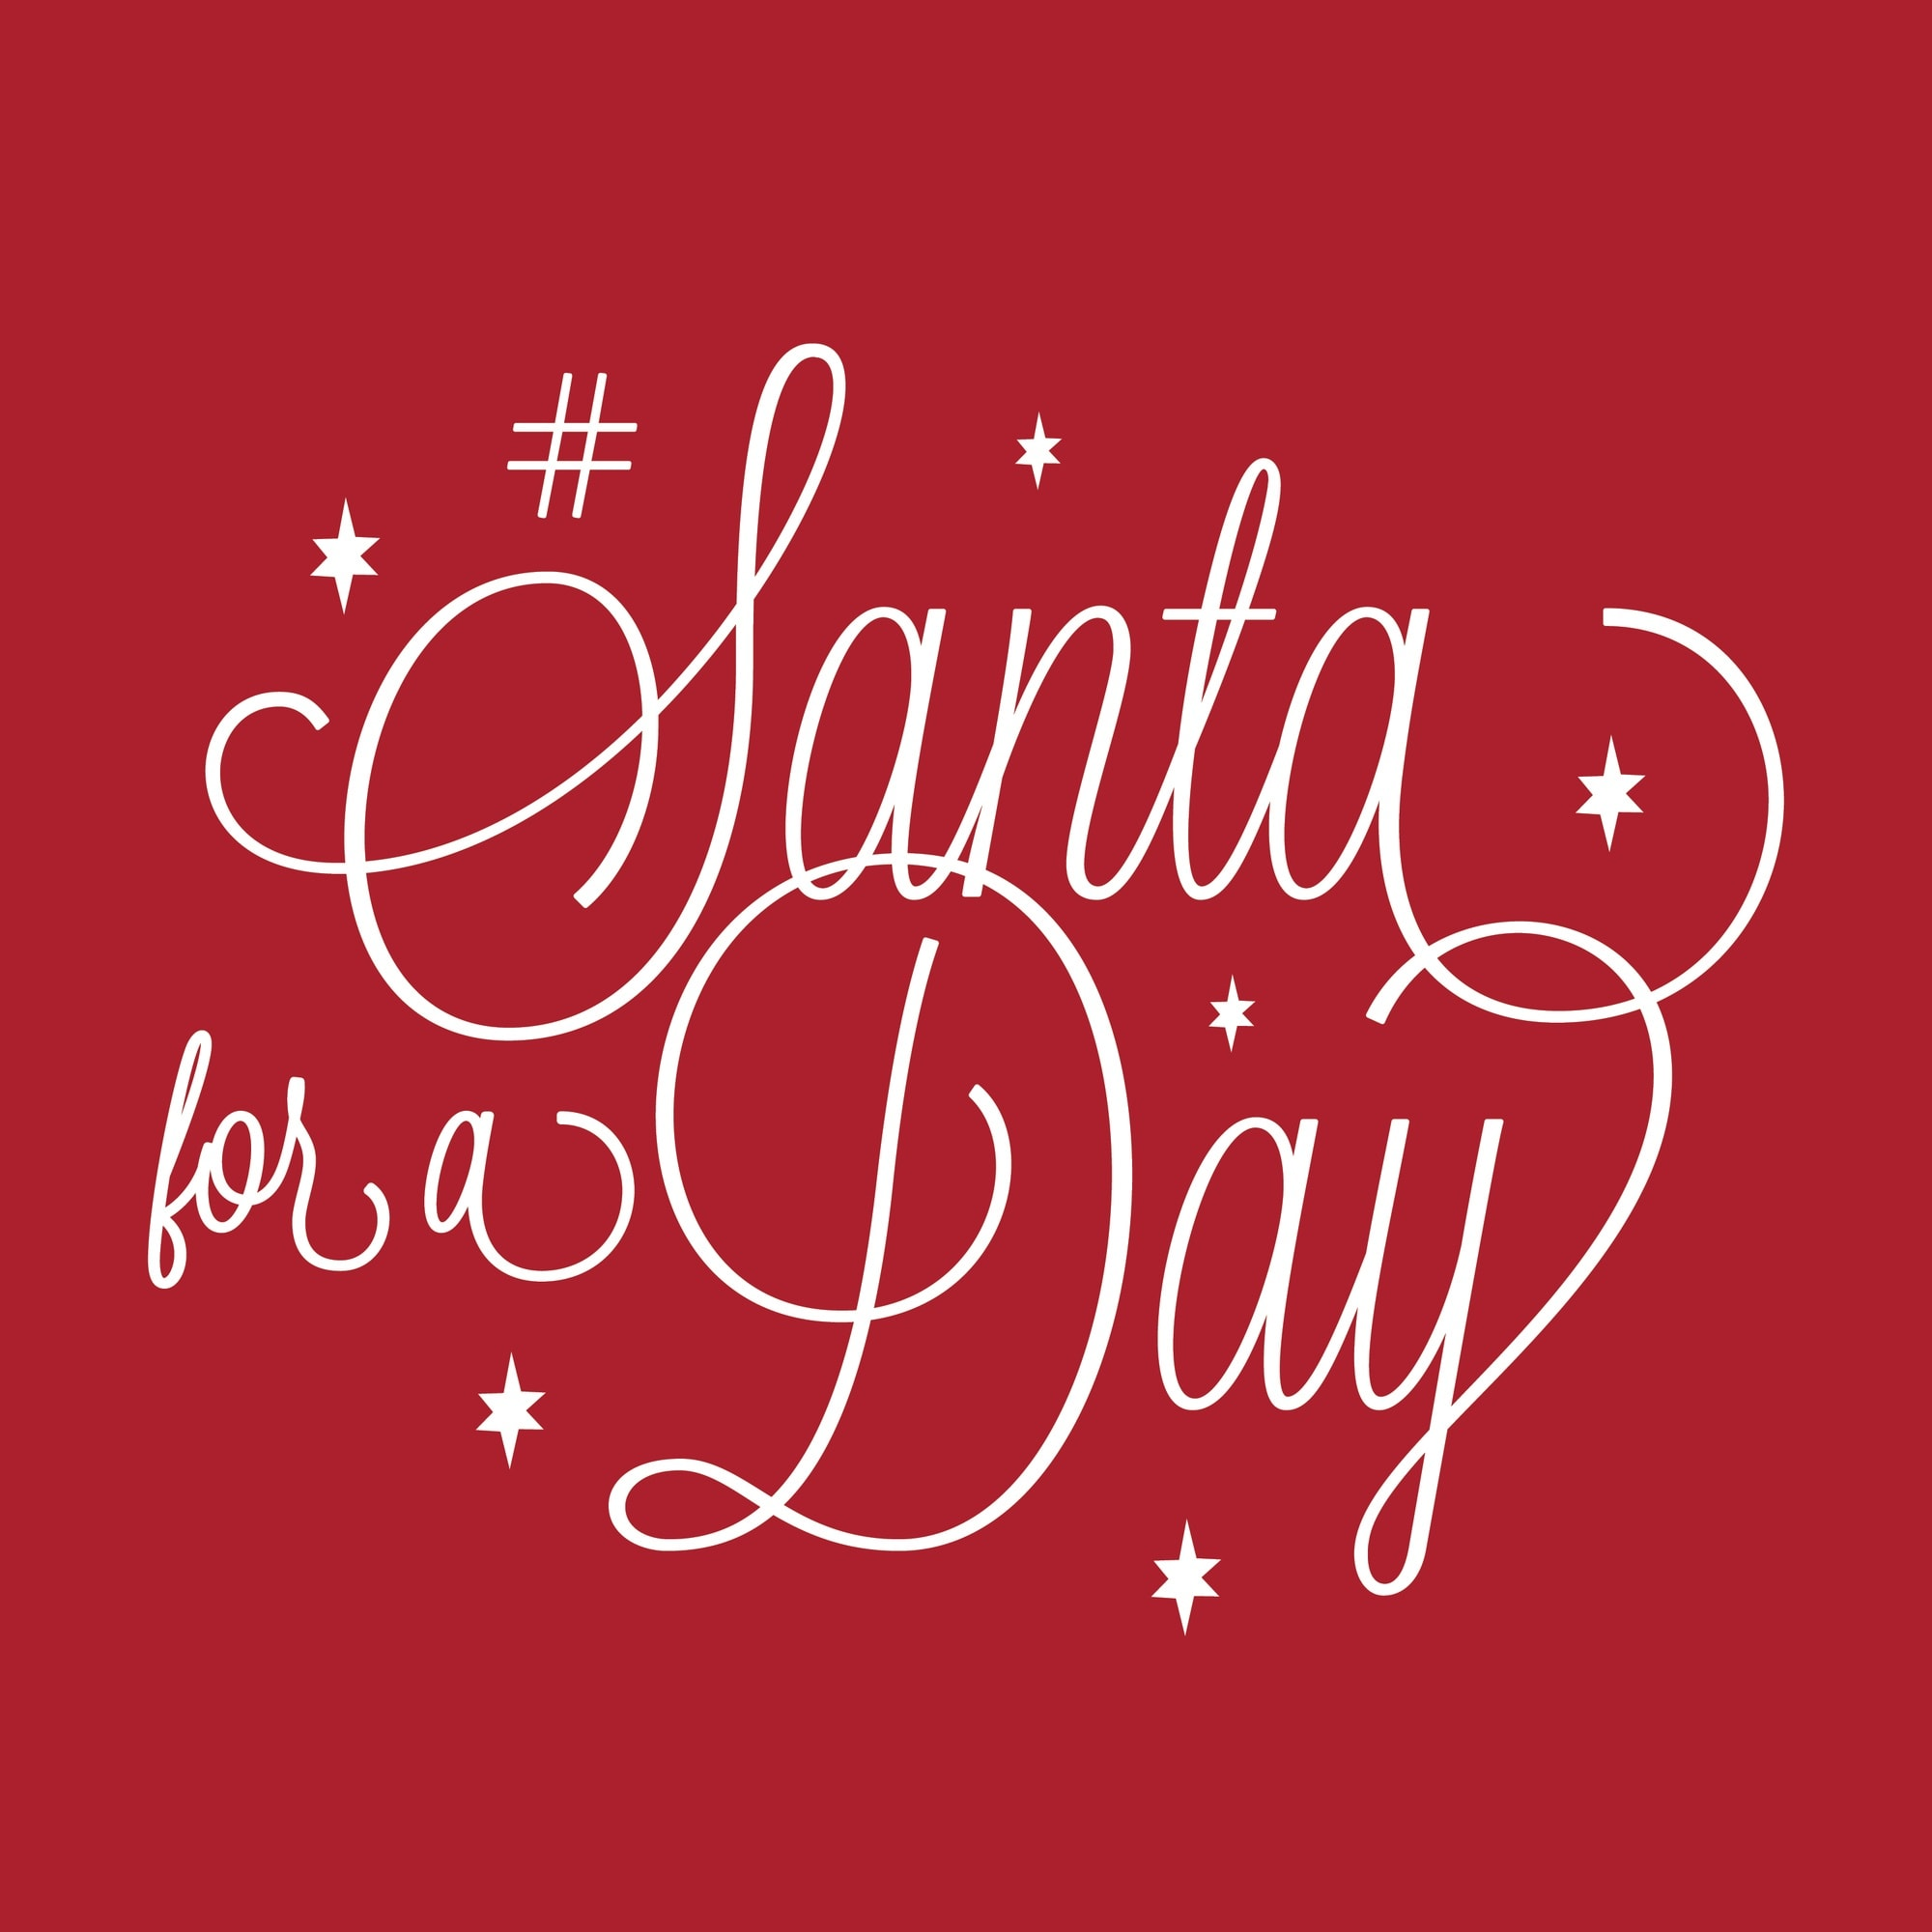 Santa for a Day Land's End giveaway via Twitter